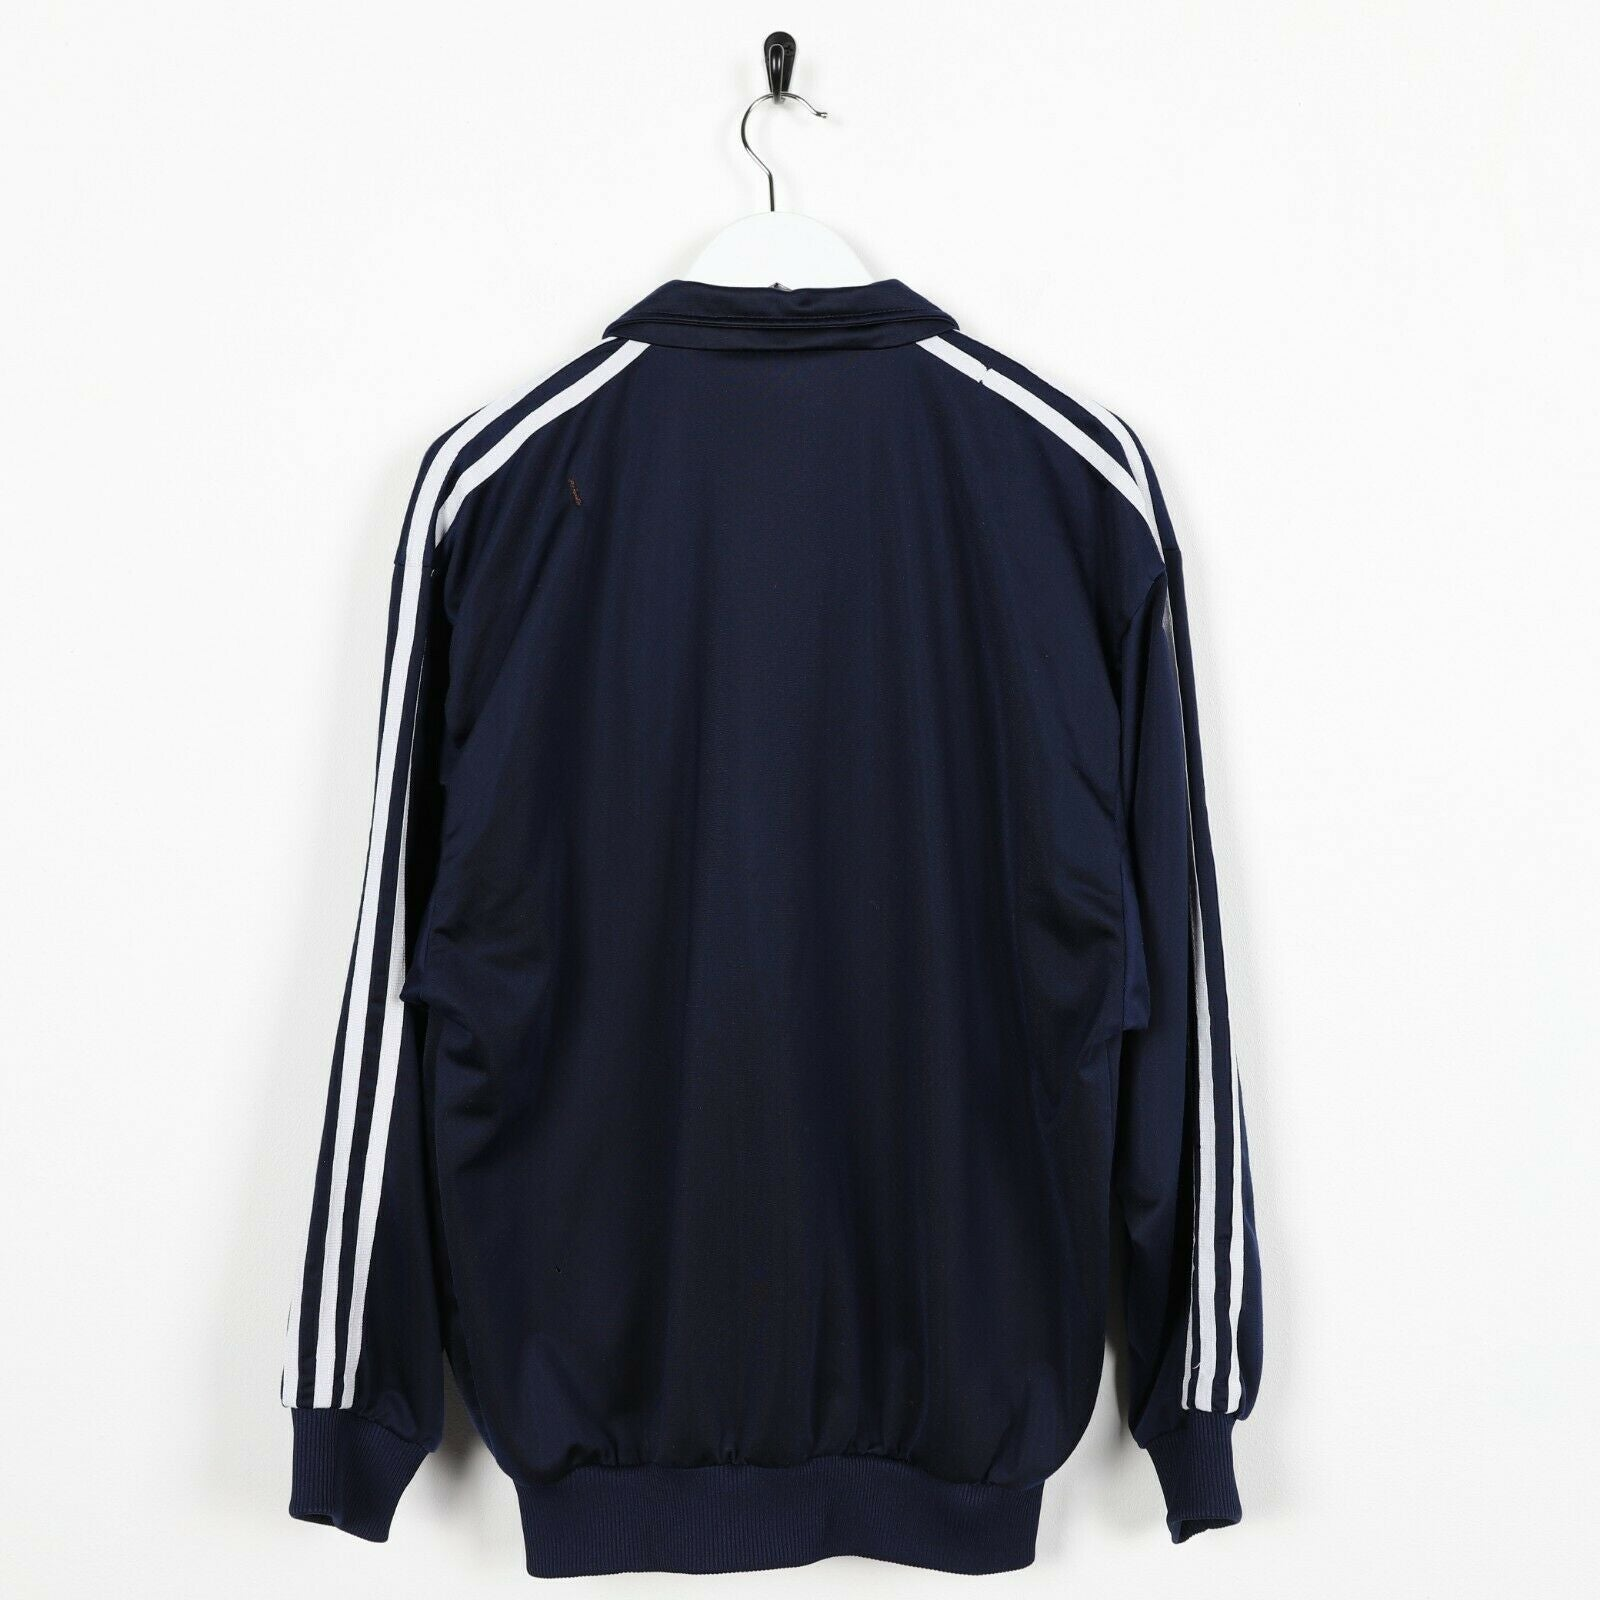 Vintage 80s ADIDAS Small Logo Track Top Jacket Navy Blue | Small S